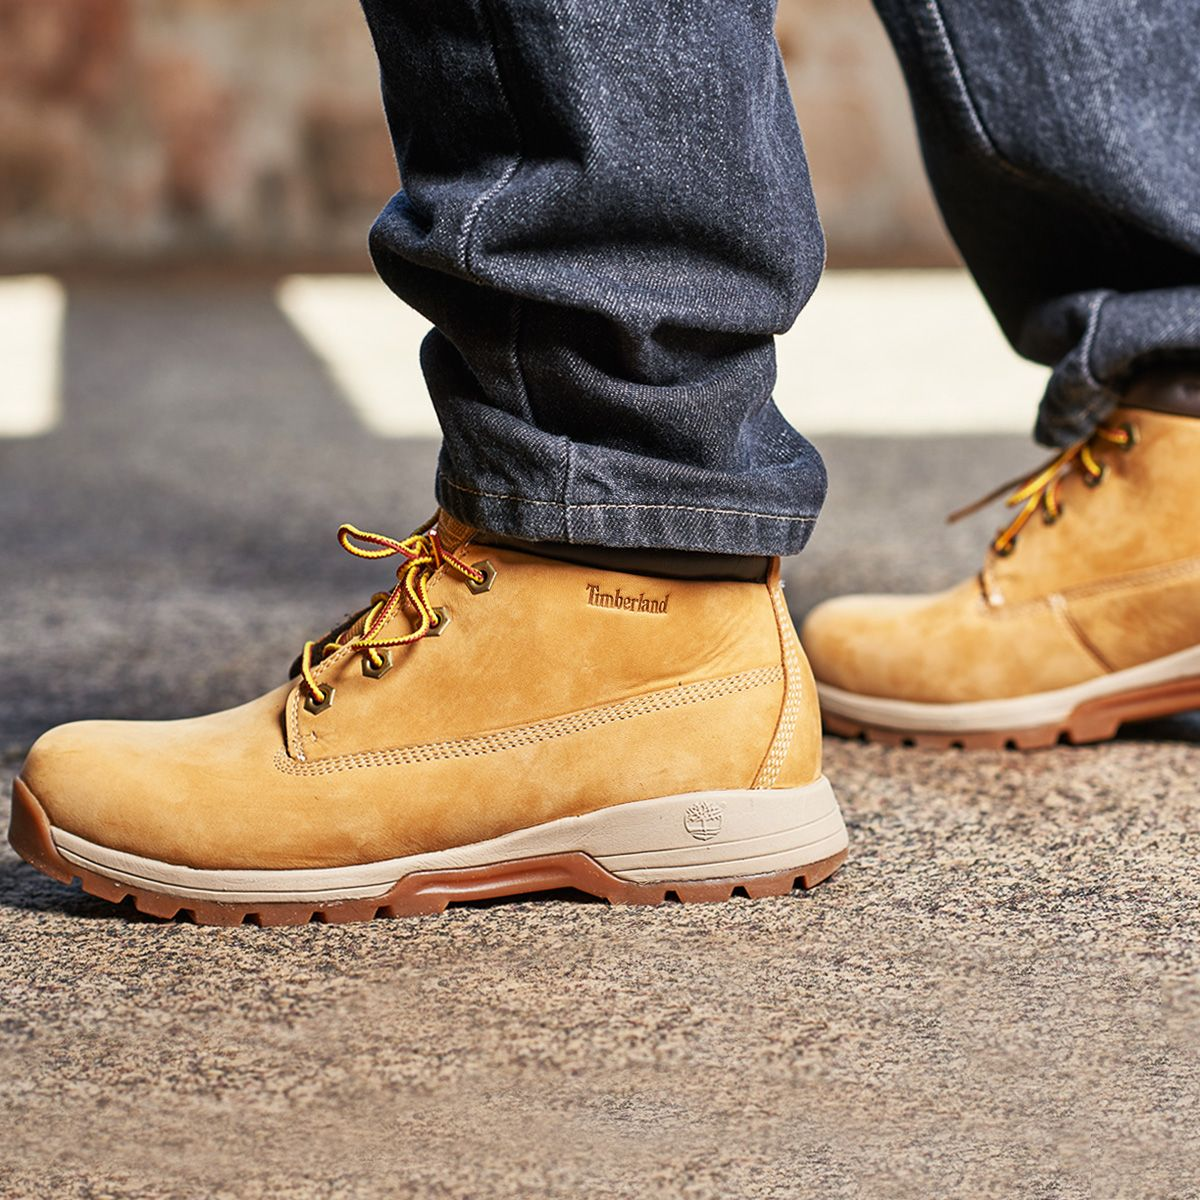 protestante digestión añadir  Made for lasting comfort — Timberland Stratmore Mid. | Ropa